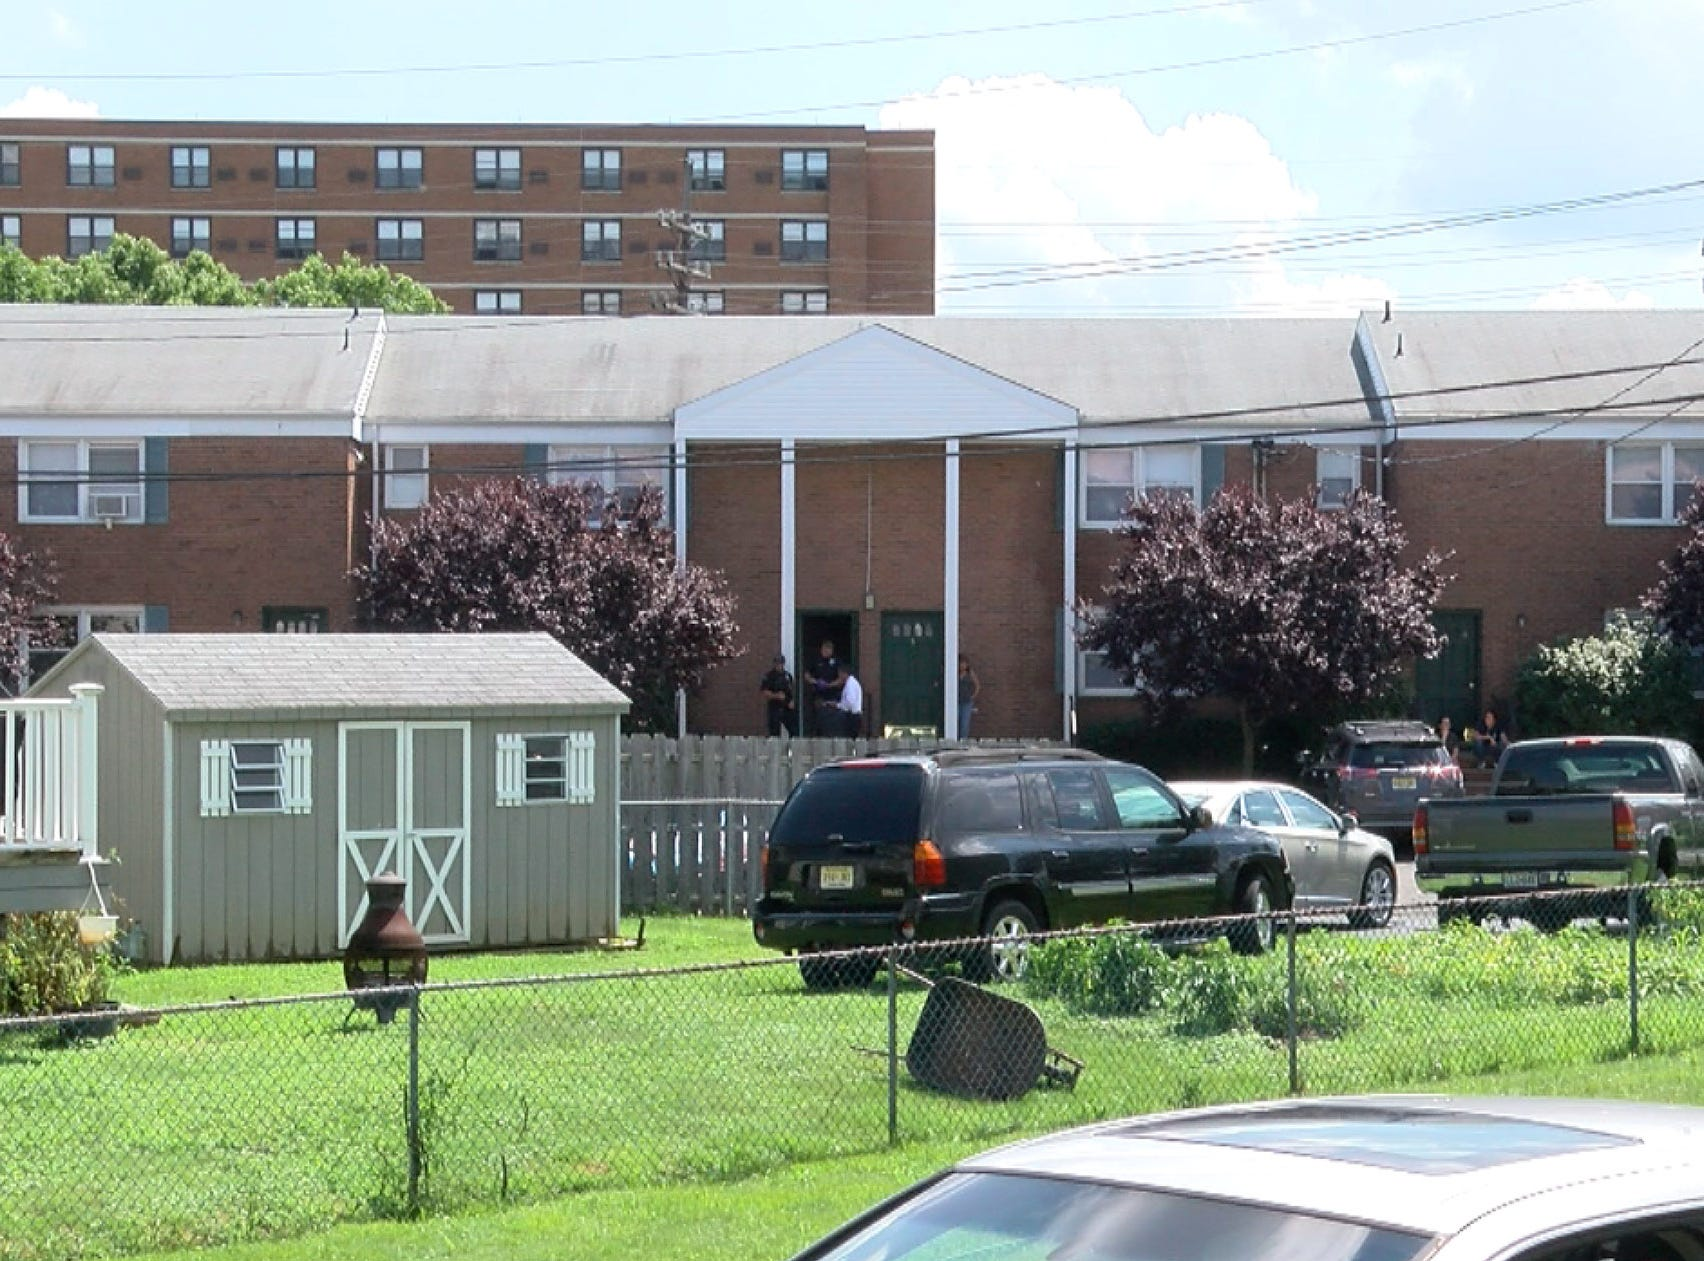 The scene of a reported shooting Thursday afternoon, August 9, 2018, at an apartment building on Center Street in Keyport.